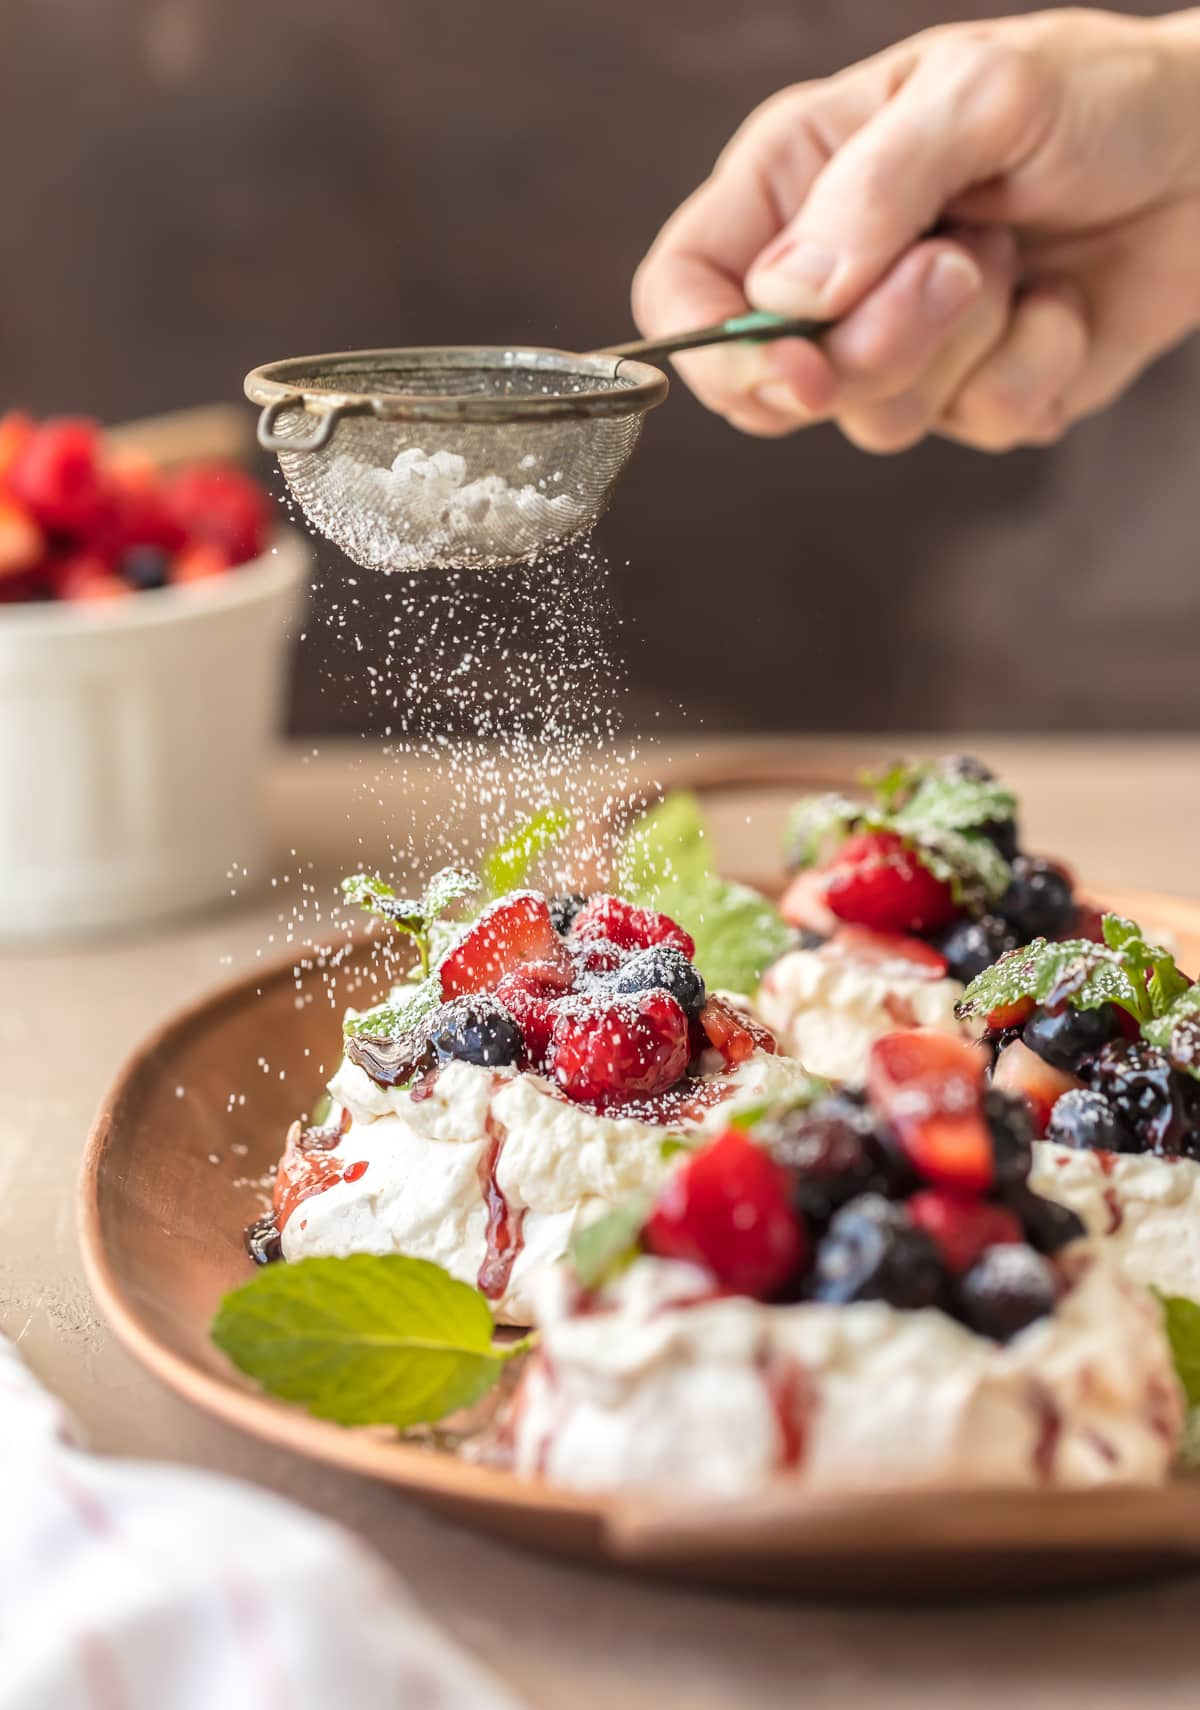 These MINI PAVLOVAS topped with fresh fruit, whipped cream, and fruit syrup is the ULTIMATE holiday dessert. The perfect dessert recipe for Christmas or any celebration. Beautiful, delicious, and EASY!